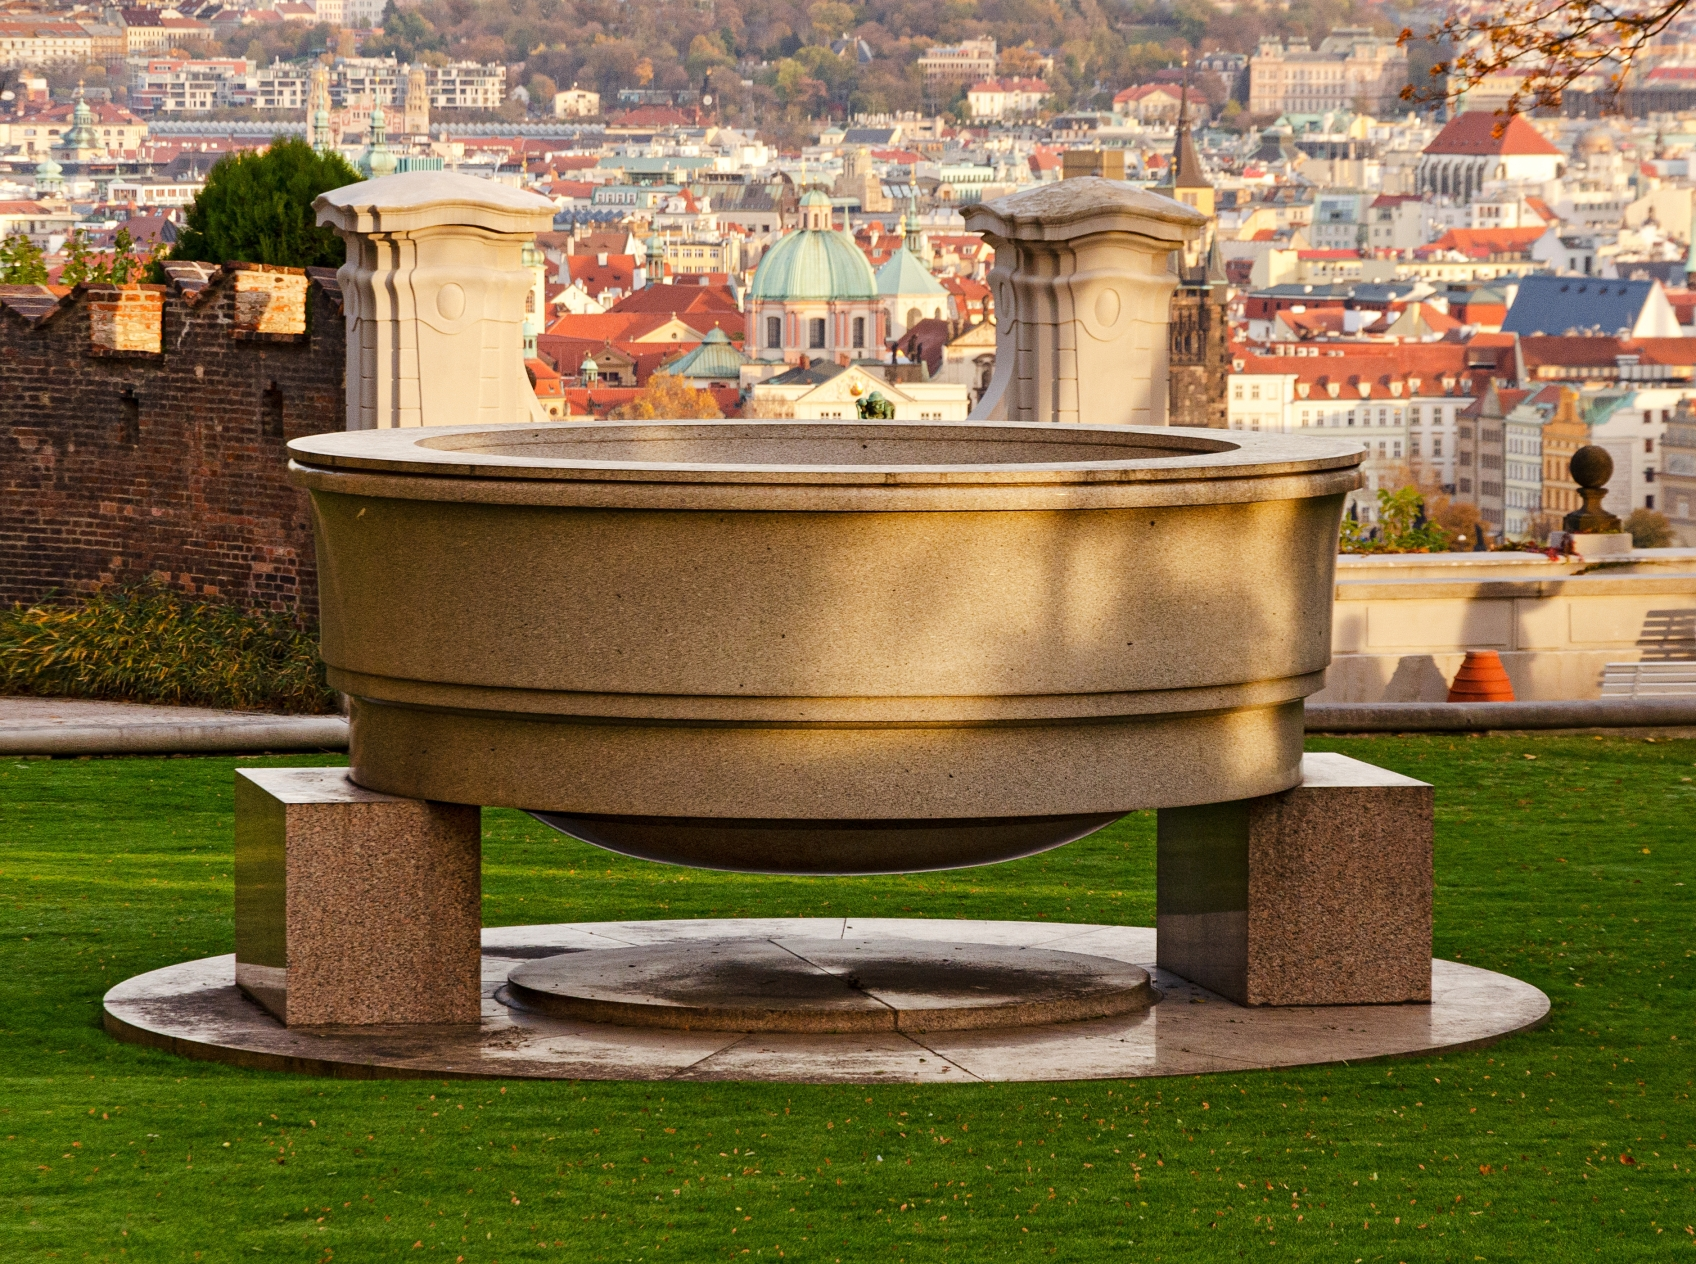 The South Gardens, Prague Castle